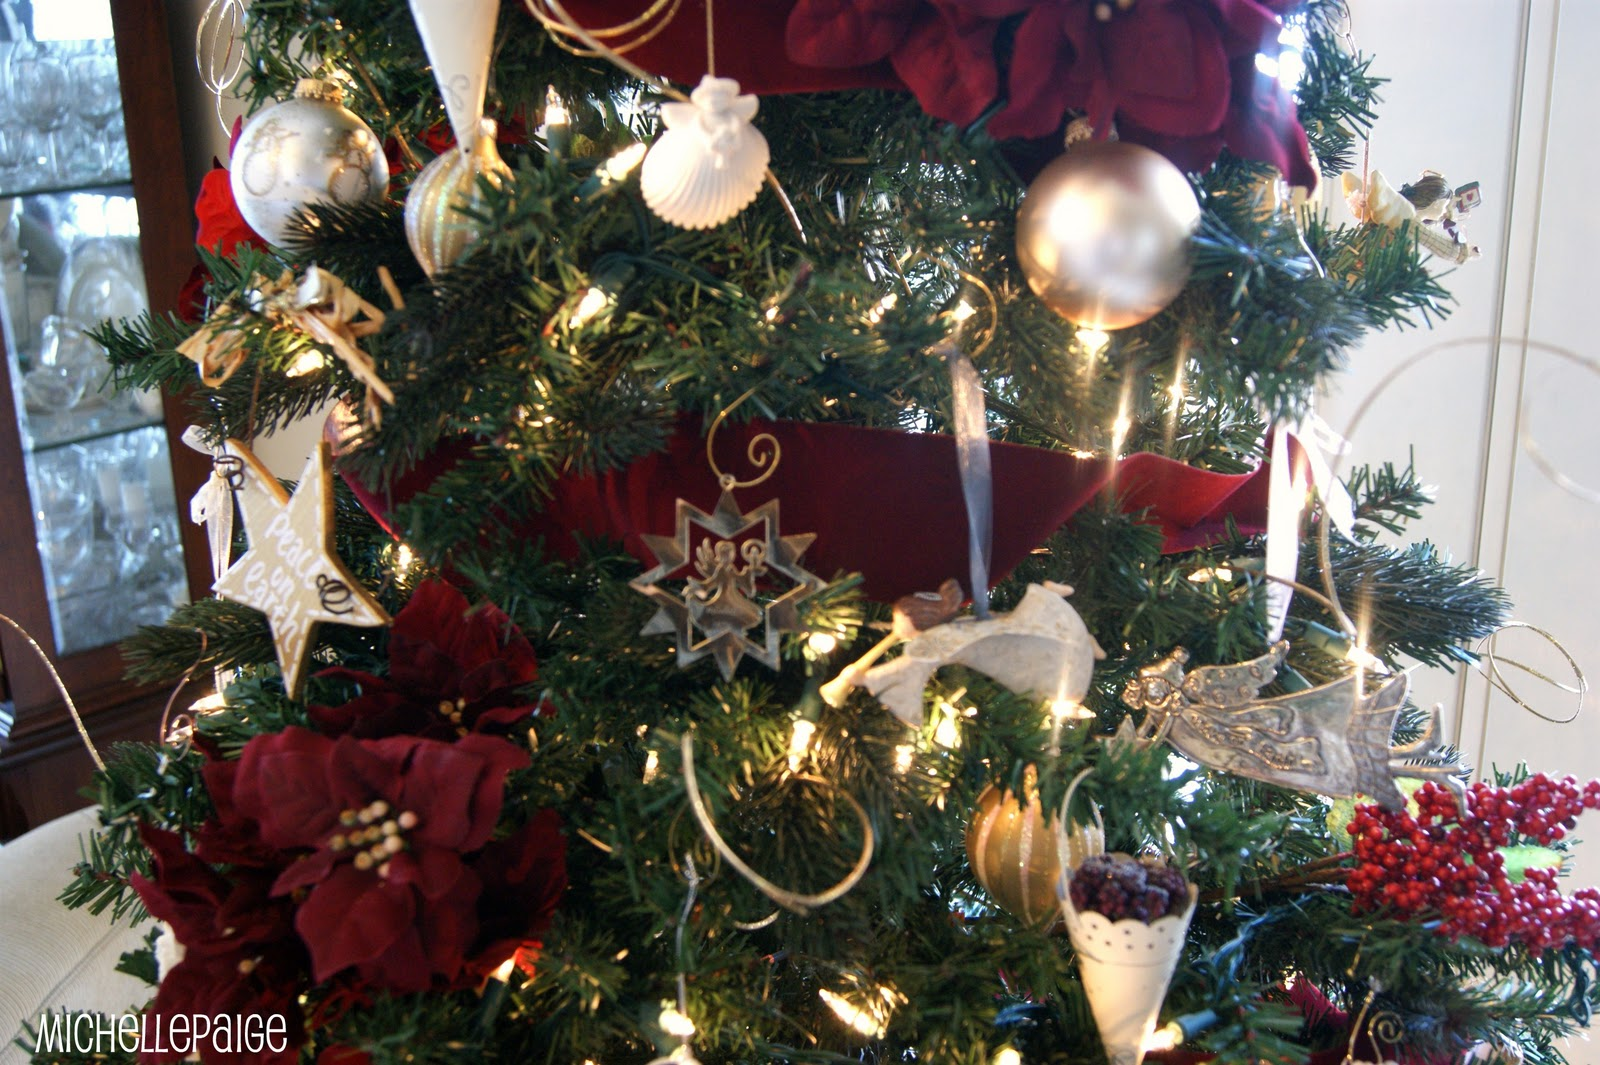 Michelle paige blogs decorating artificial trees for Artificial cranberries decoration